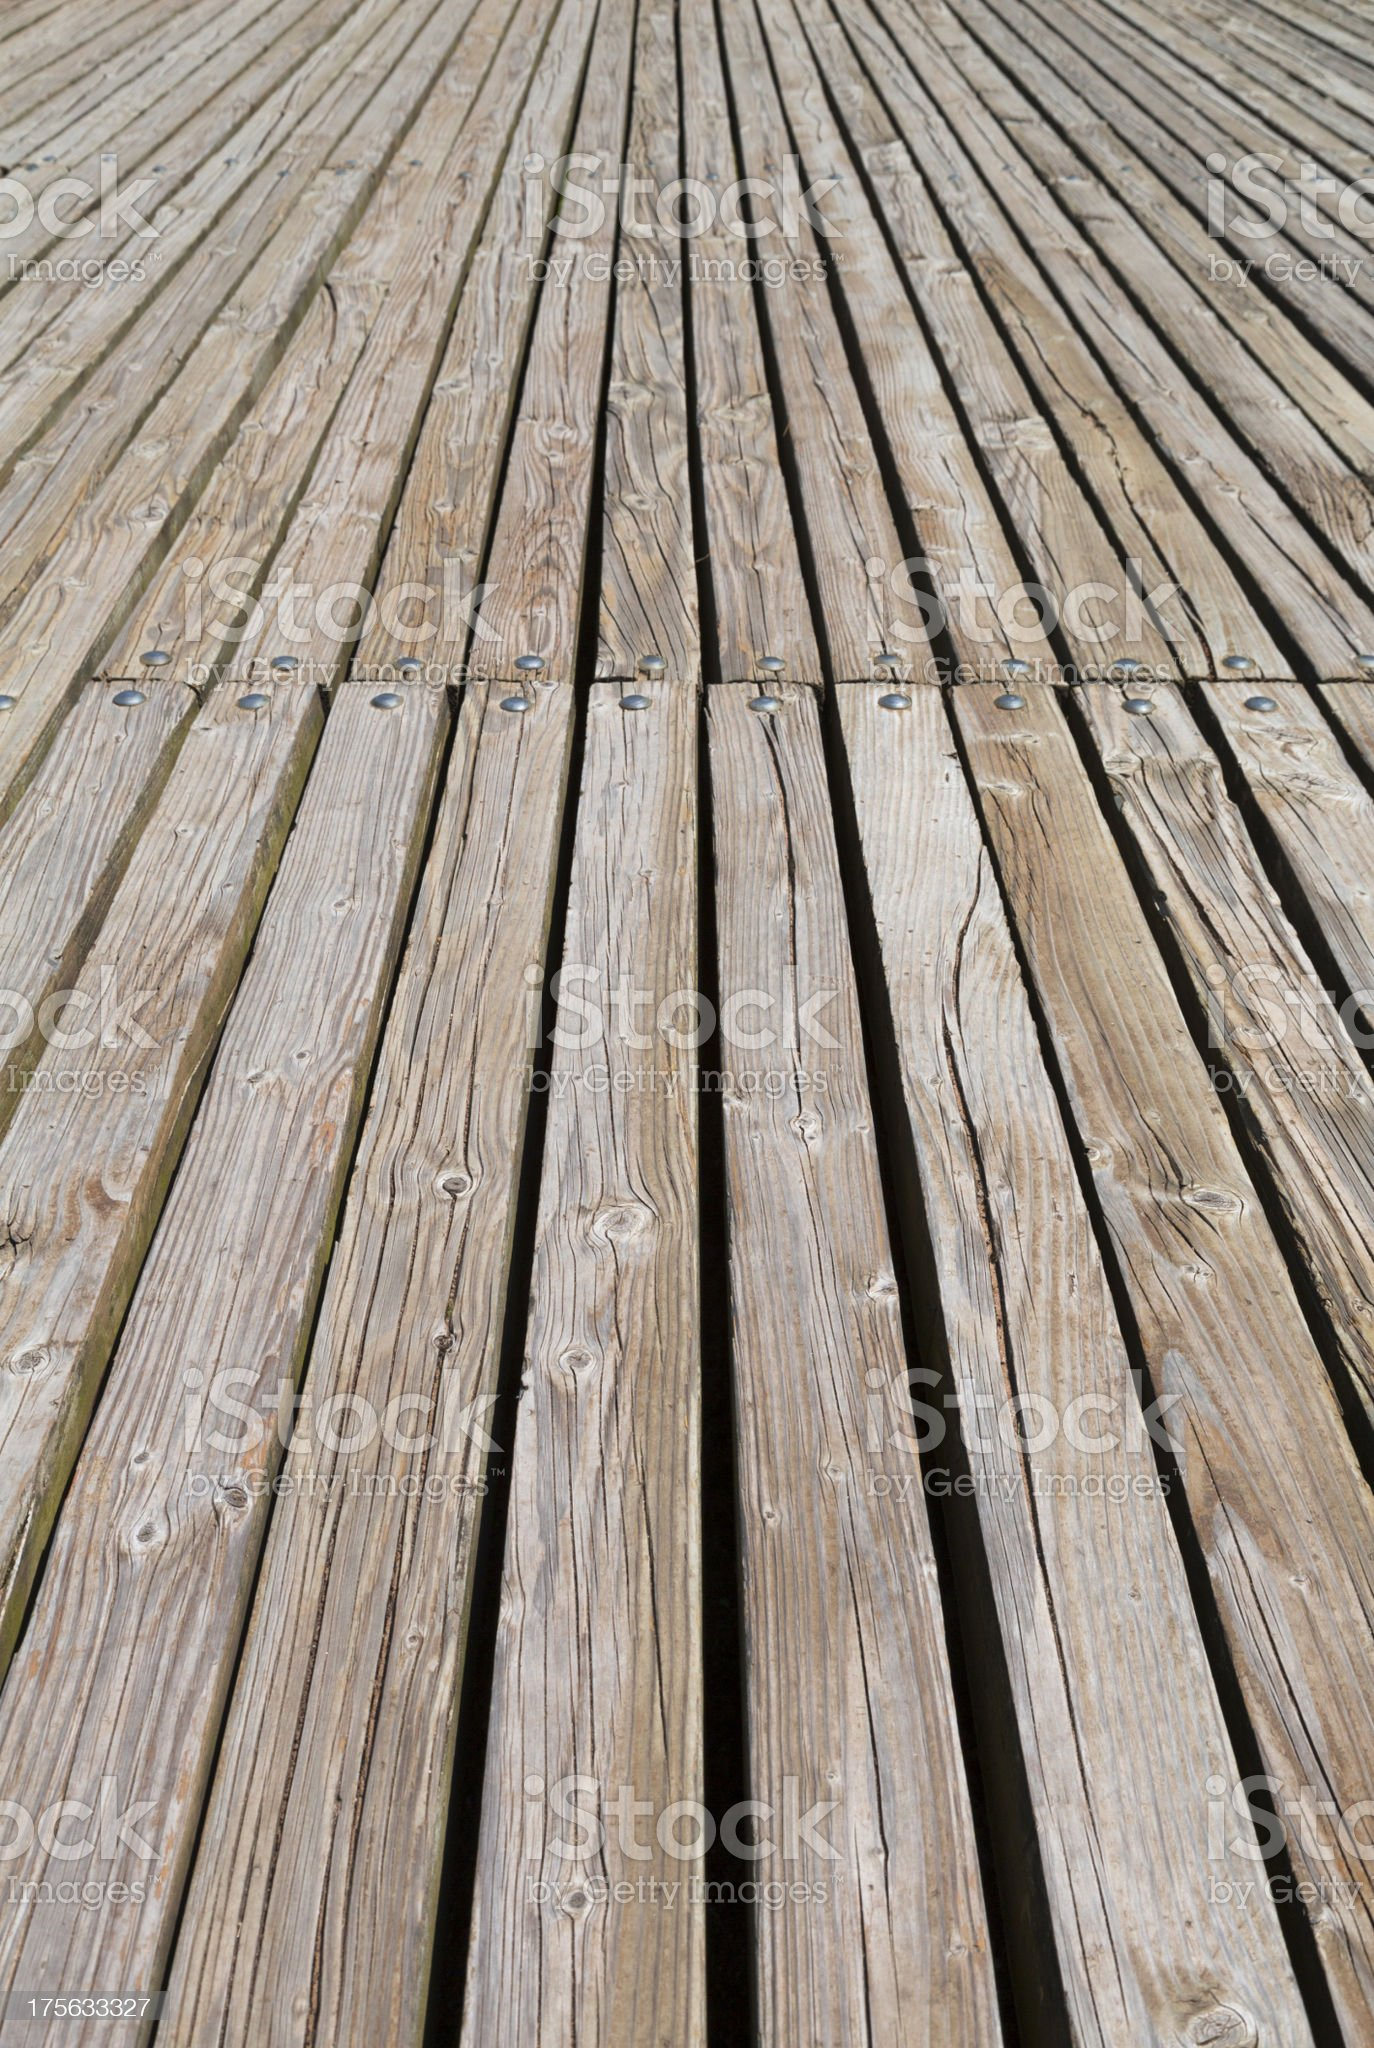 wooden boardwalk royalty-free stock photo